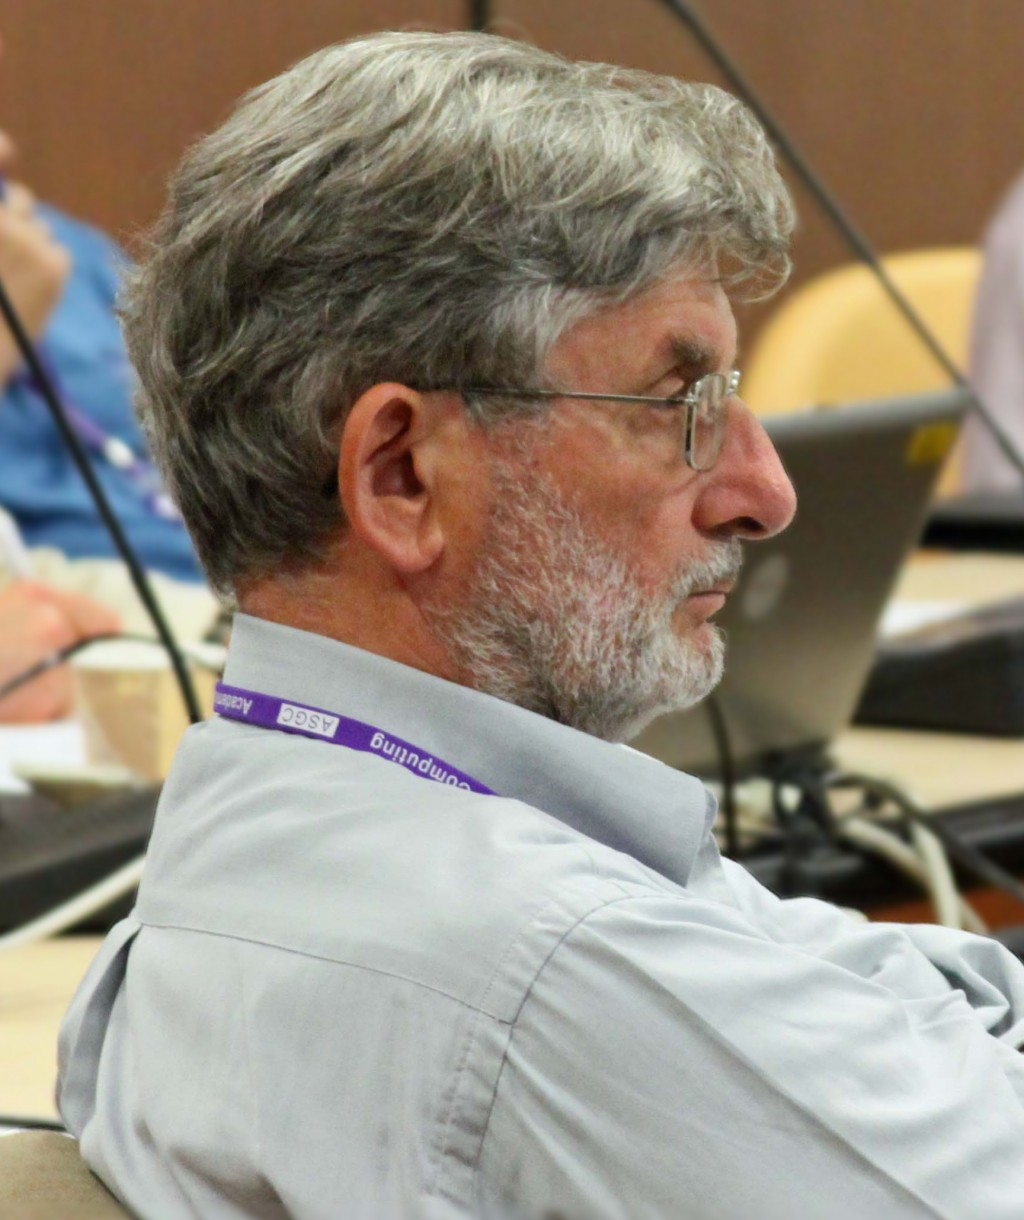 Jean-Eudes Augustin, former PAC chair, during the review